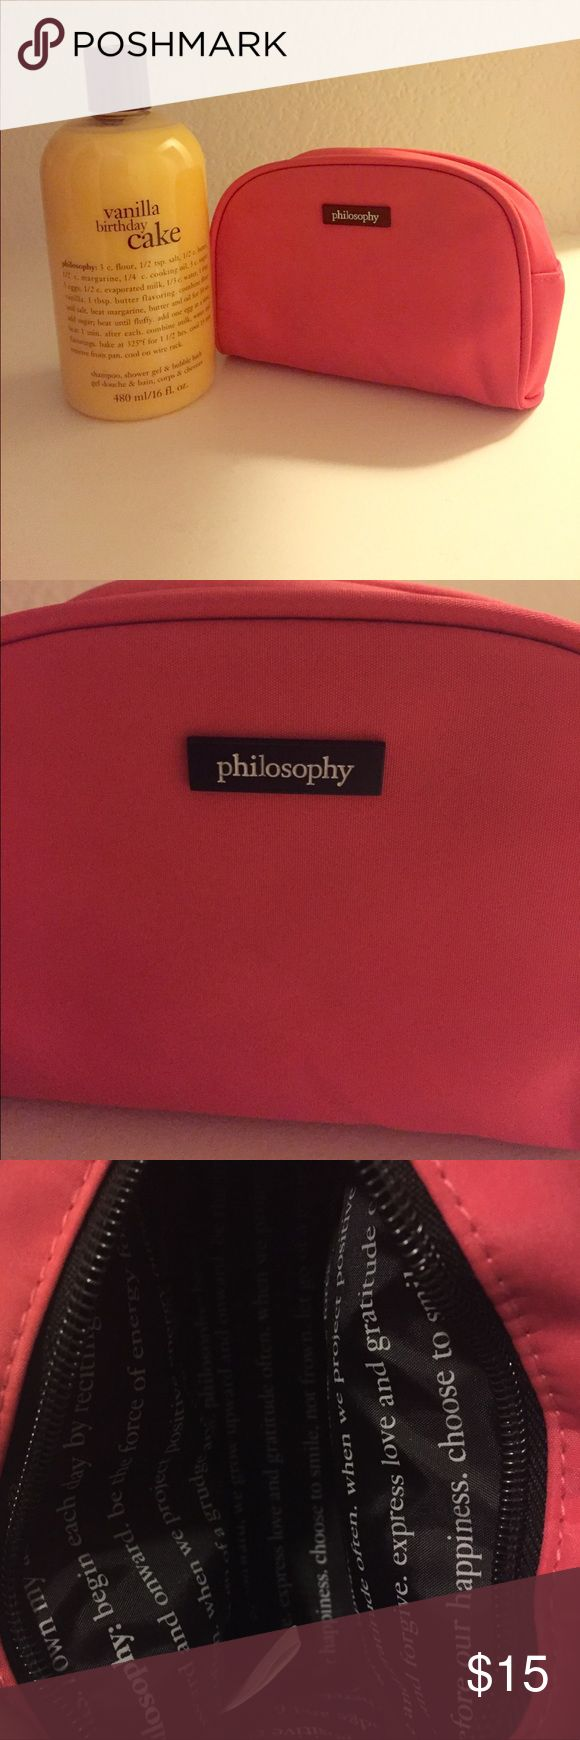 Philosophy birthday cake and cosmetic bag 🎂Philosophy vanilla birthday cake 3in1 shampoo, shower gel and bubble bath (16oz) with philosophy cosmetic bag , sealed, absolutely never opened, plus free gift with purchase 🎁 Philosophy Makeup